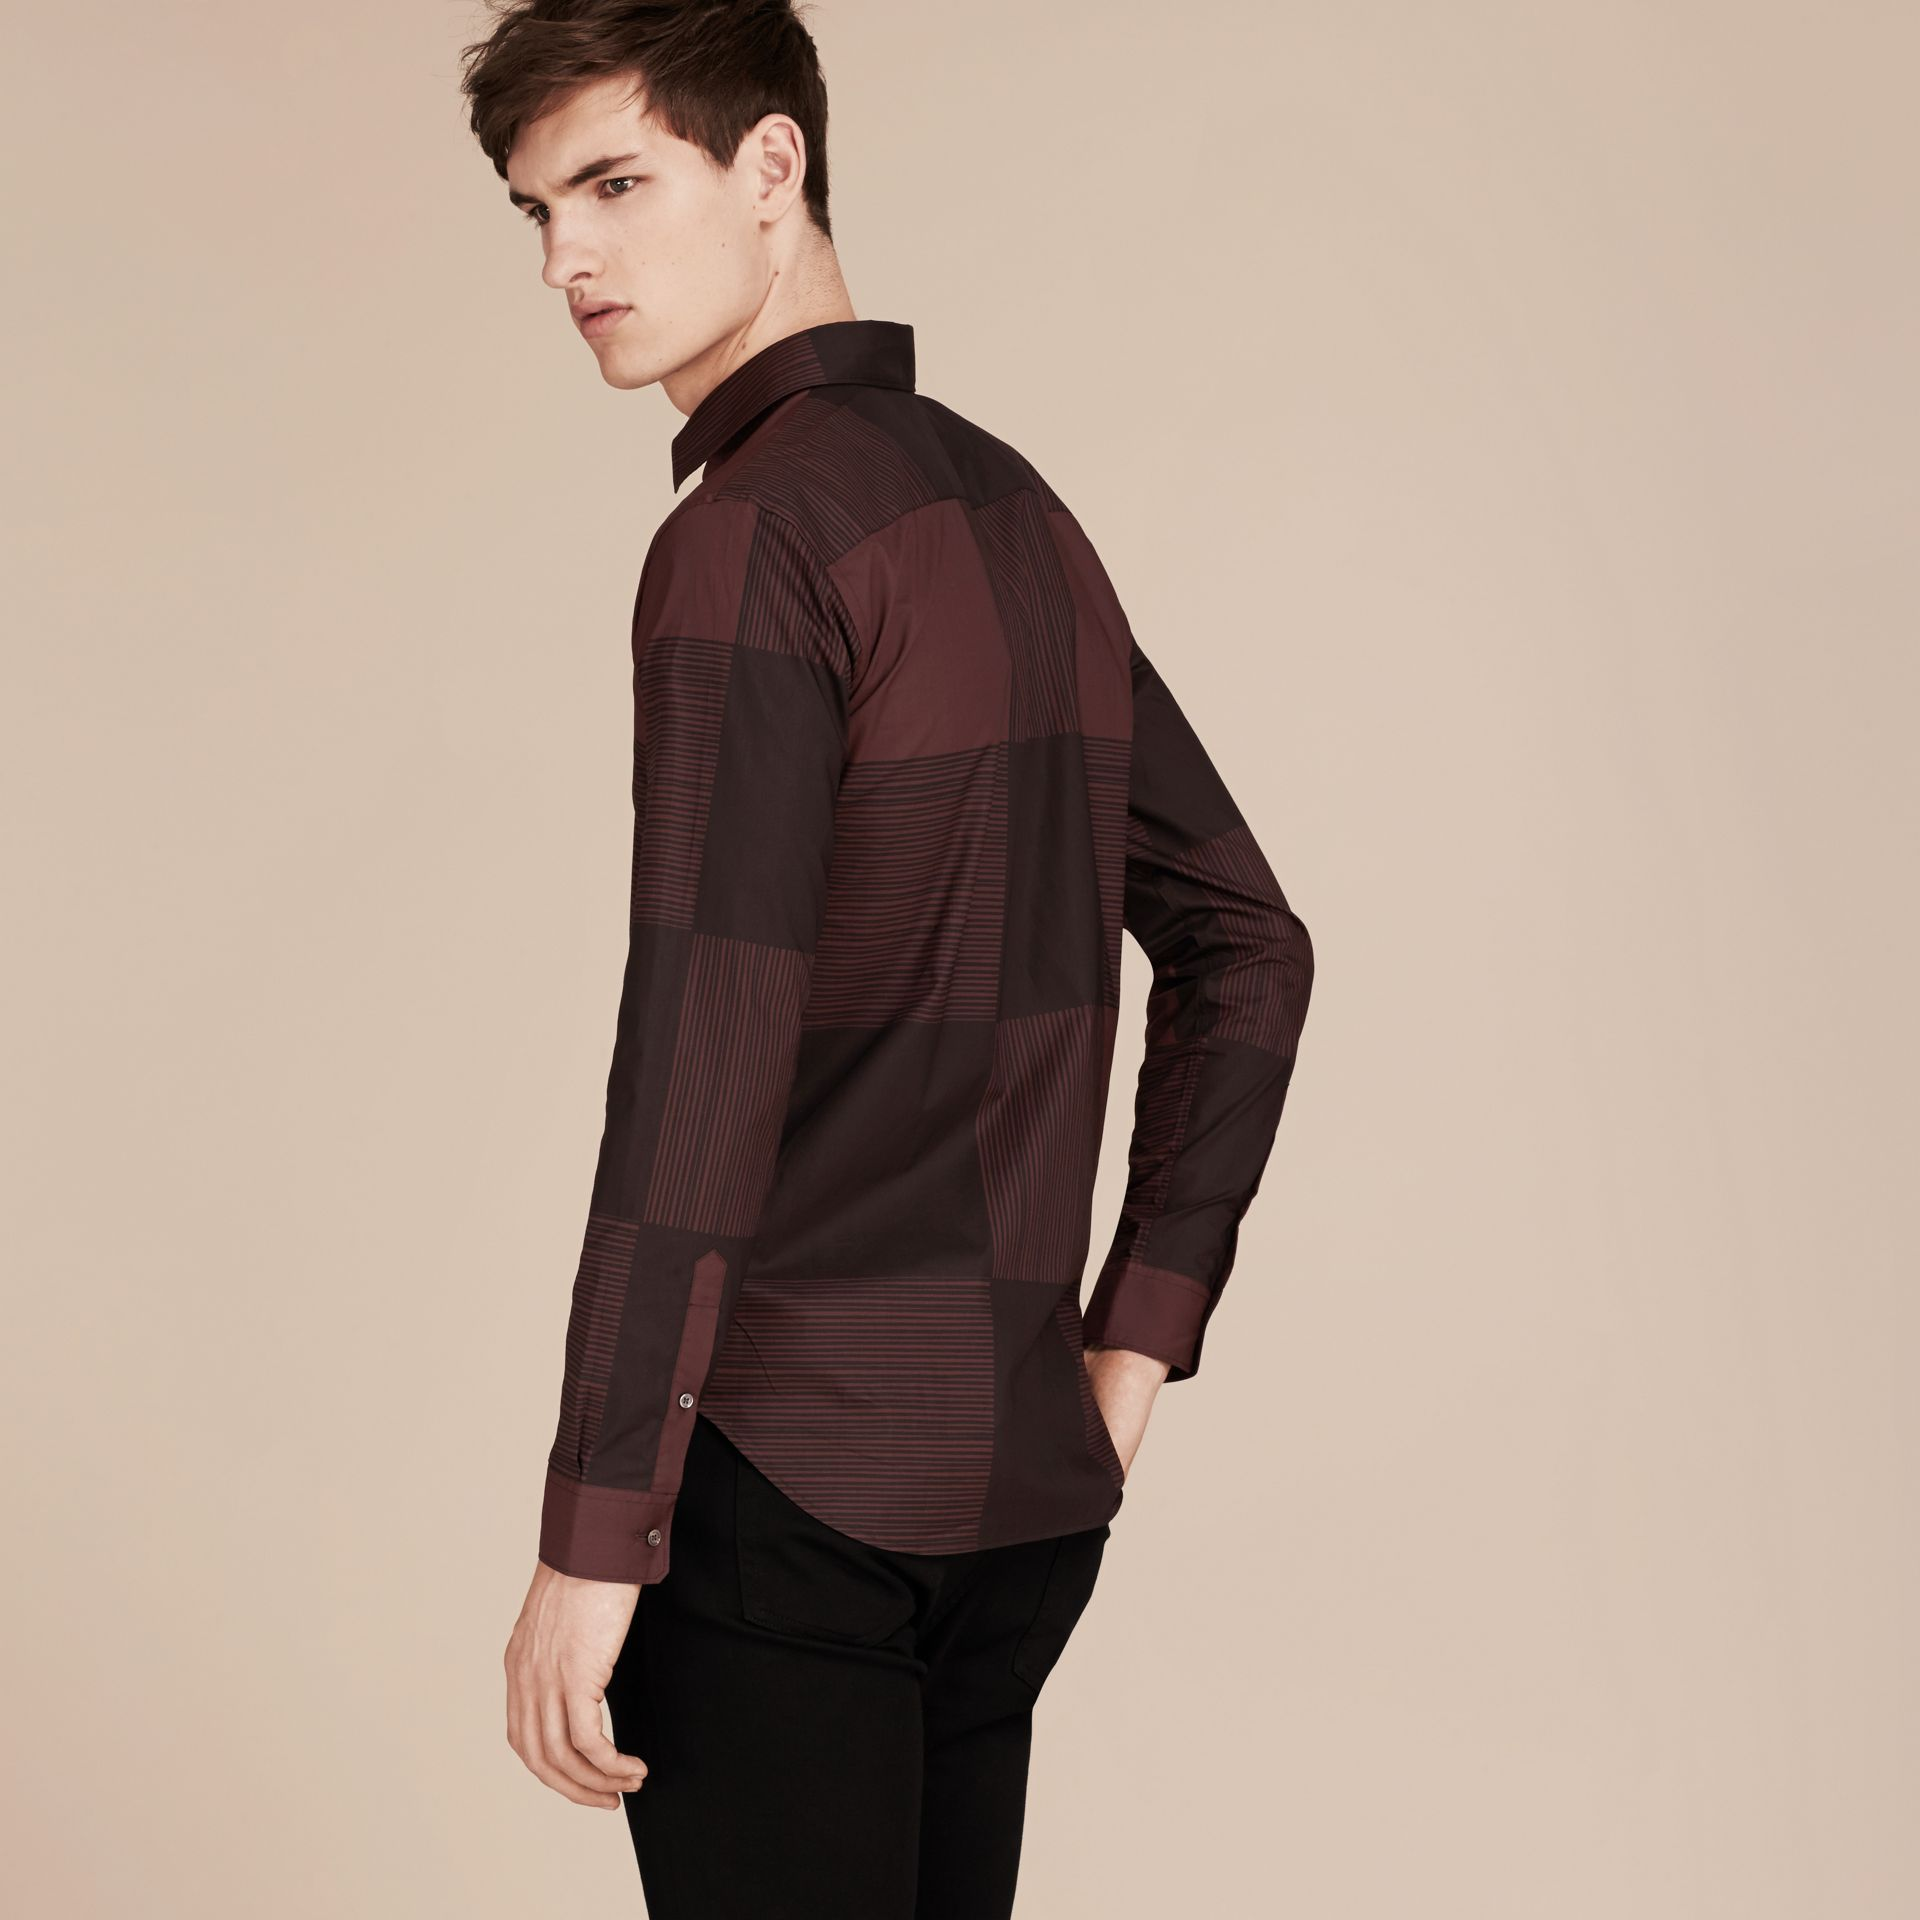 Burgundy Check Cotton Shirt Burgundy - gallery image 3